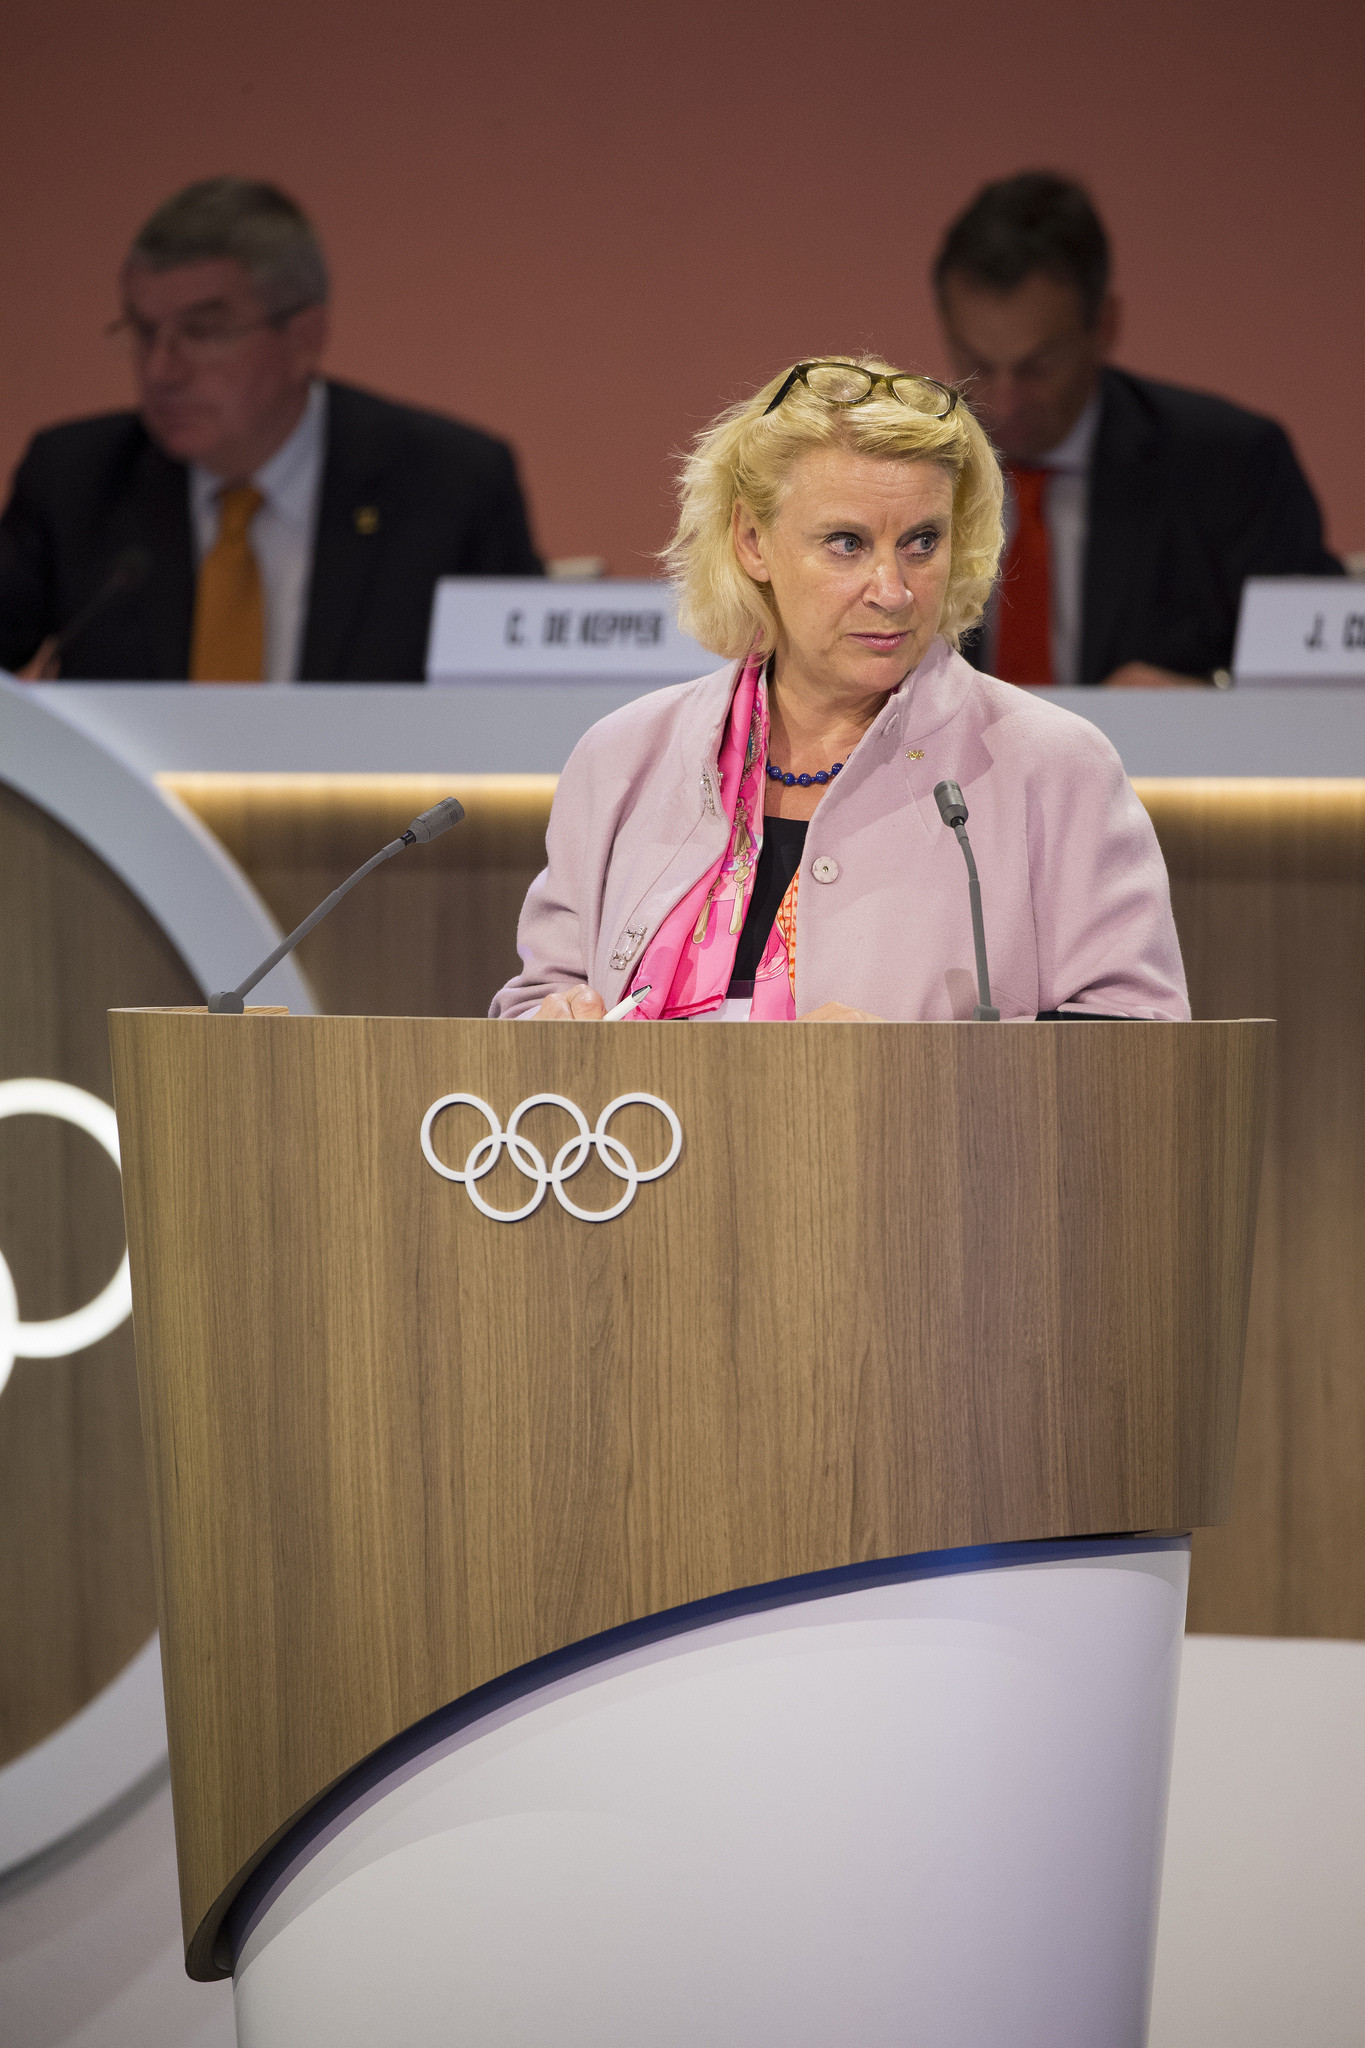 IOC chief ethics and compliance officer Päquerette Girard Zappelli gave an update to the IOC Session in Lima last month on the progress of the Schmid Commission ©IOC